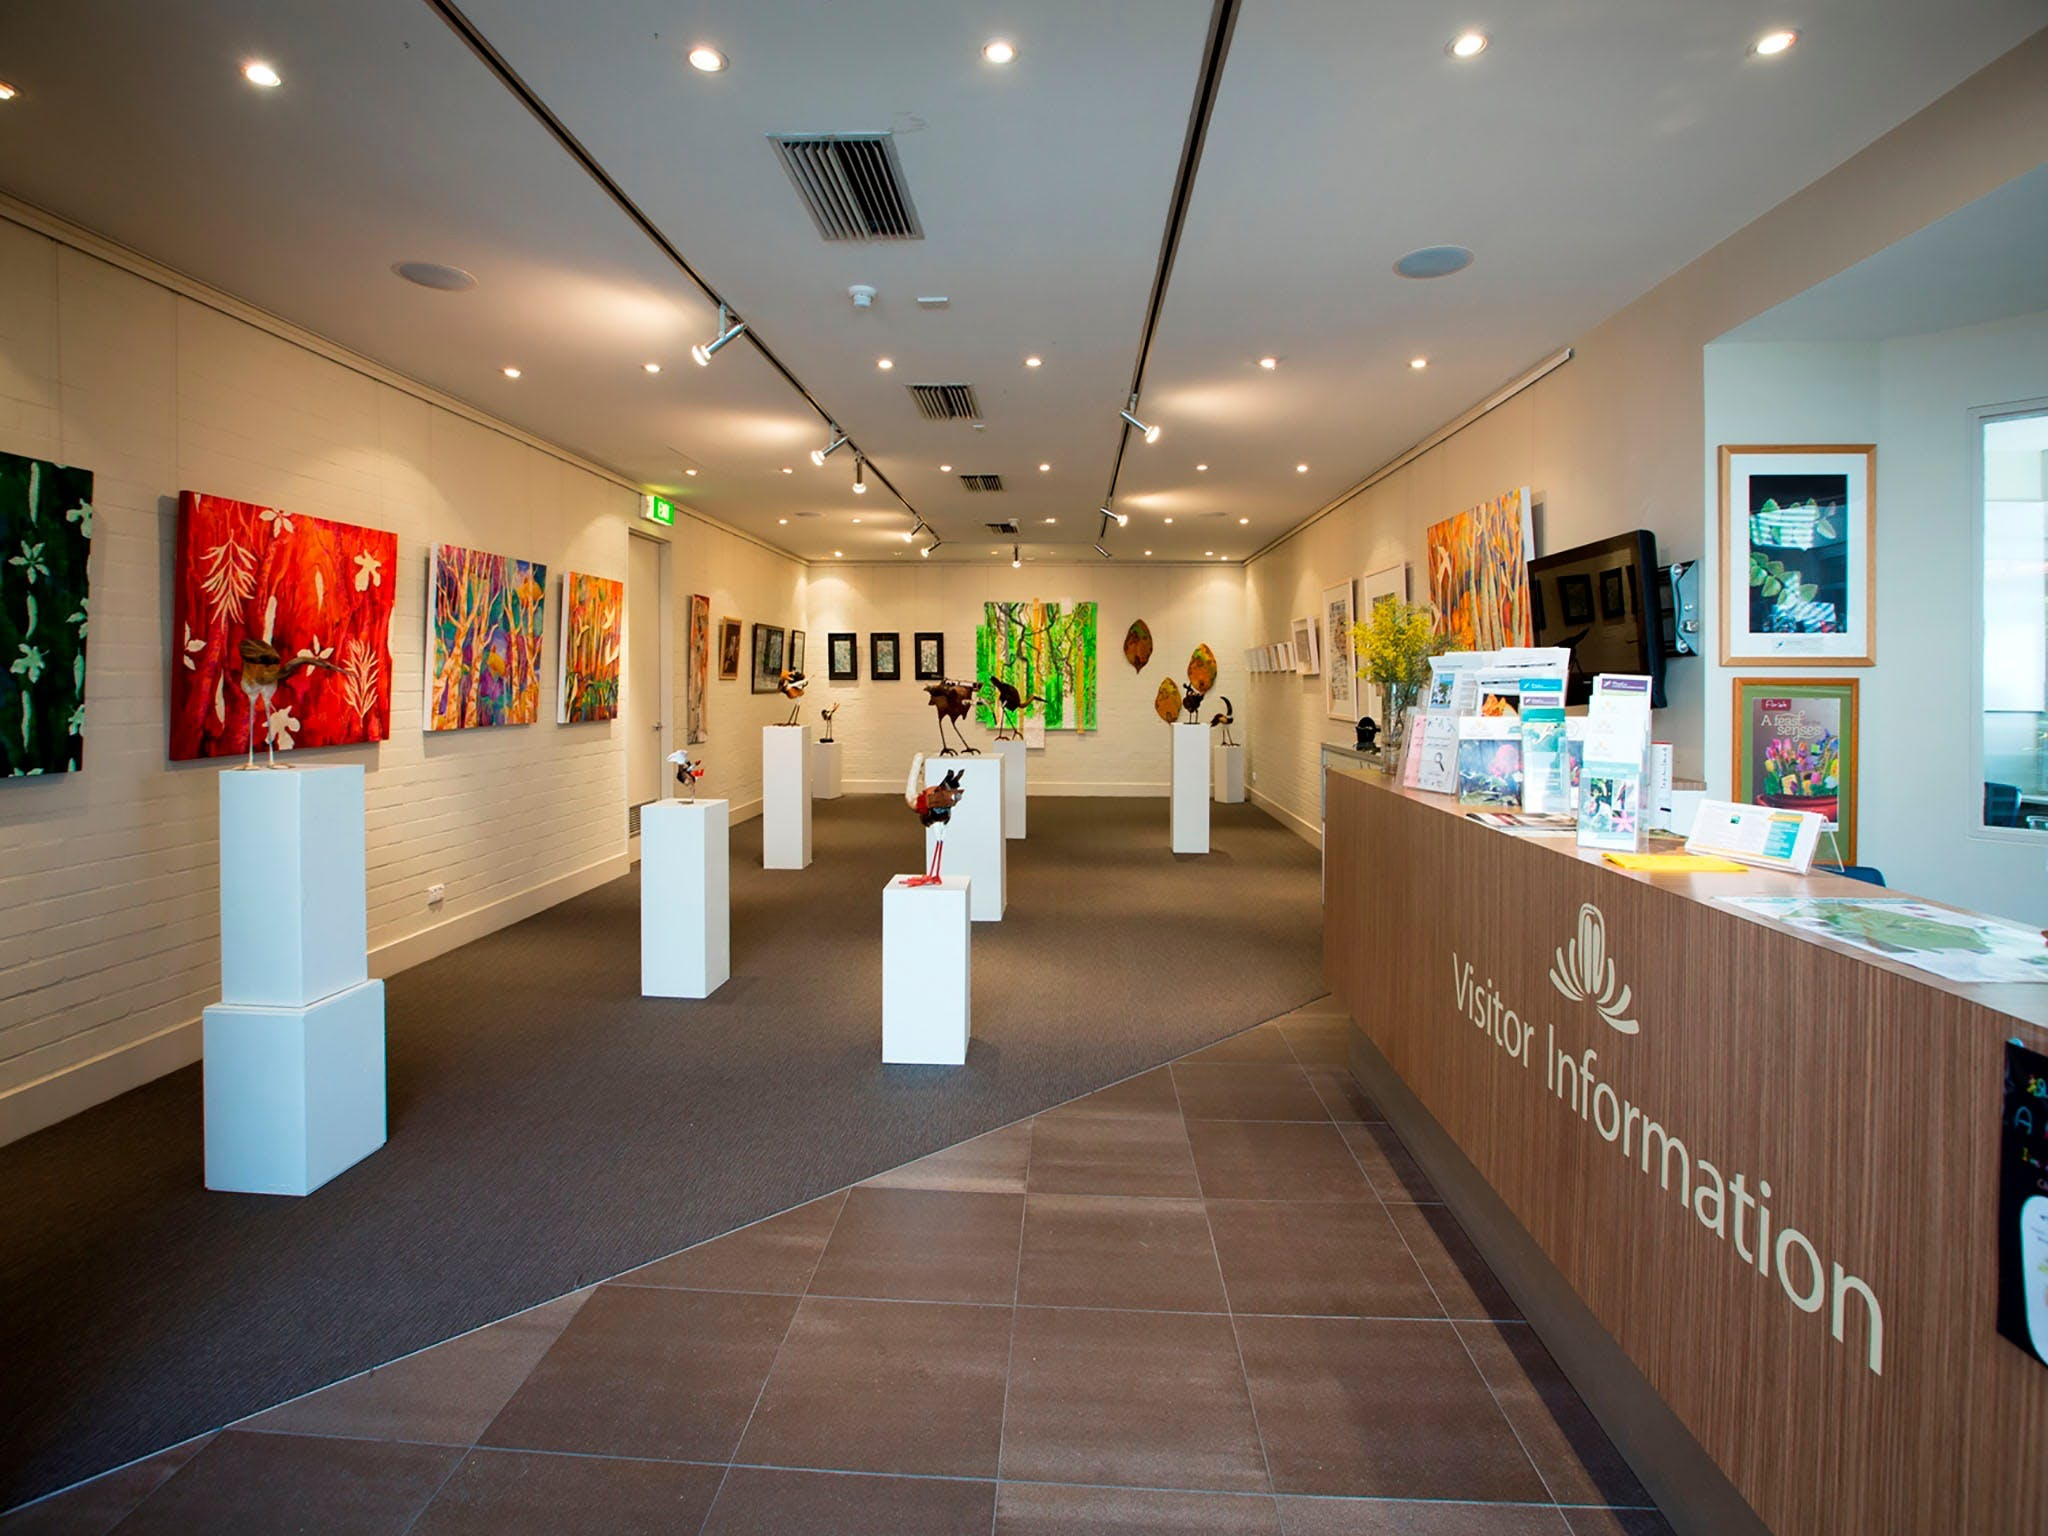 Australian National Botanic Gardens Visitor Centre Gallery - Accommodation Batemans Bay